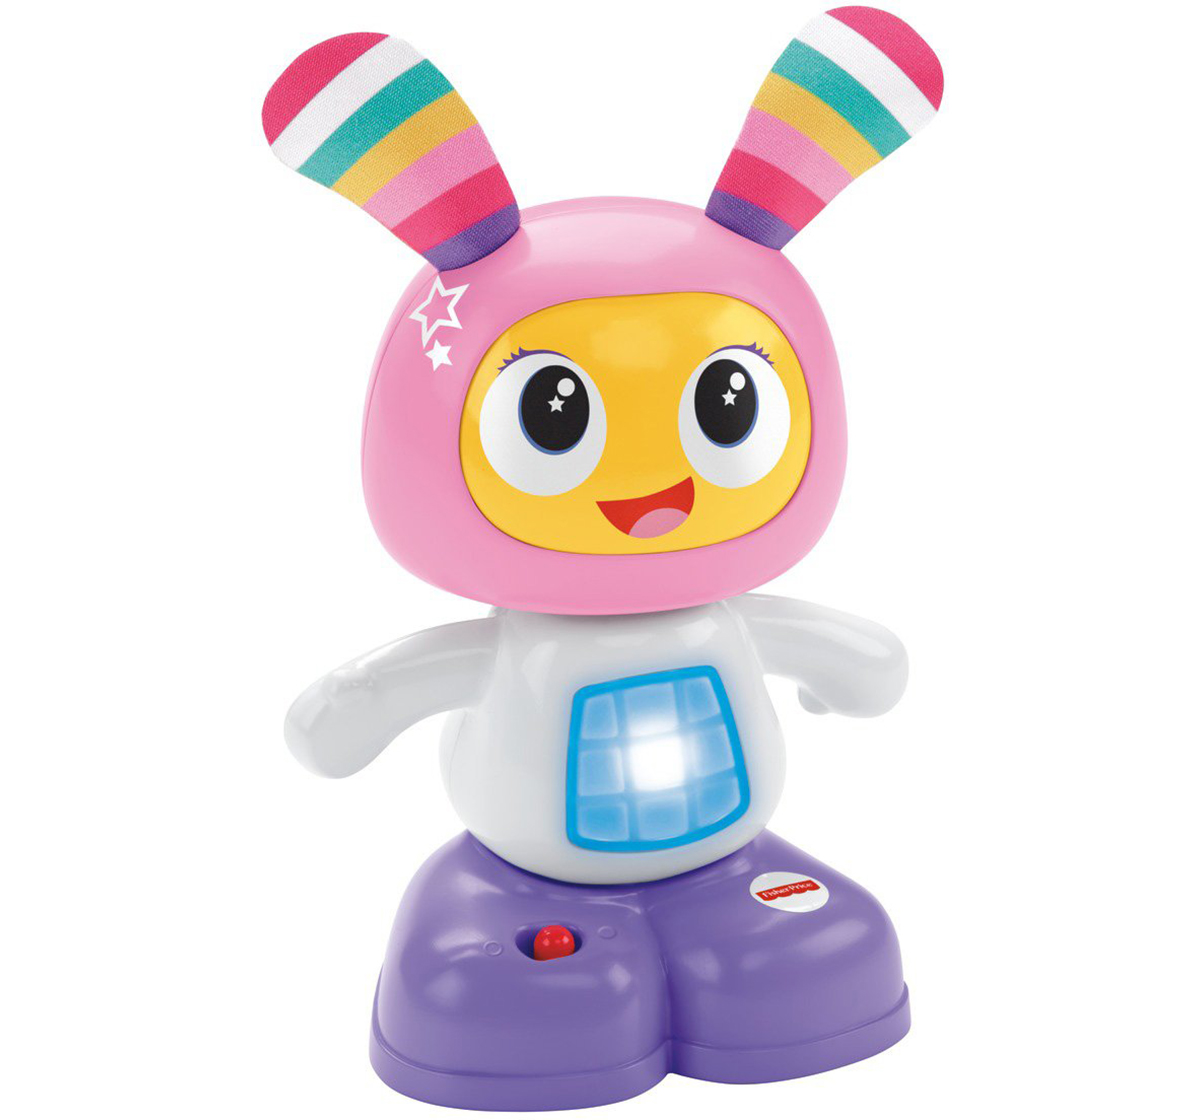 Fisher-Price   Fisher Price Beatbelle Mini Figure, Multi Color Early Learner Toys for Kids age 6M+